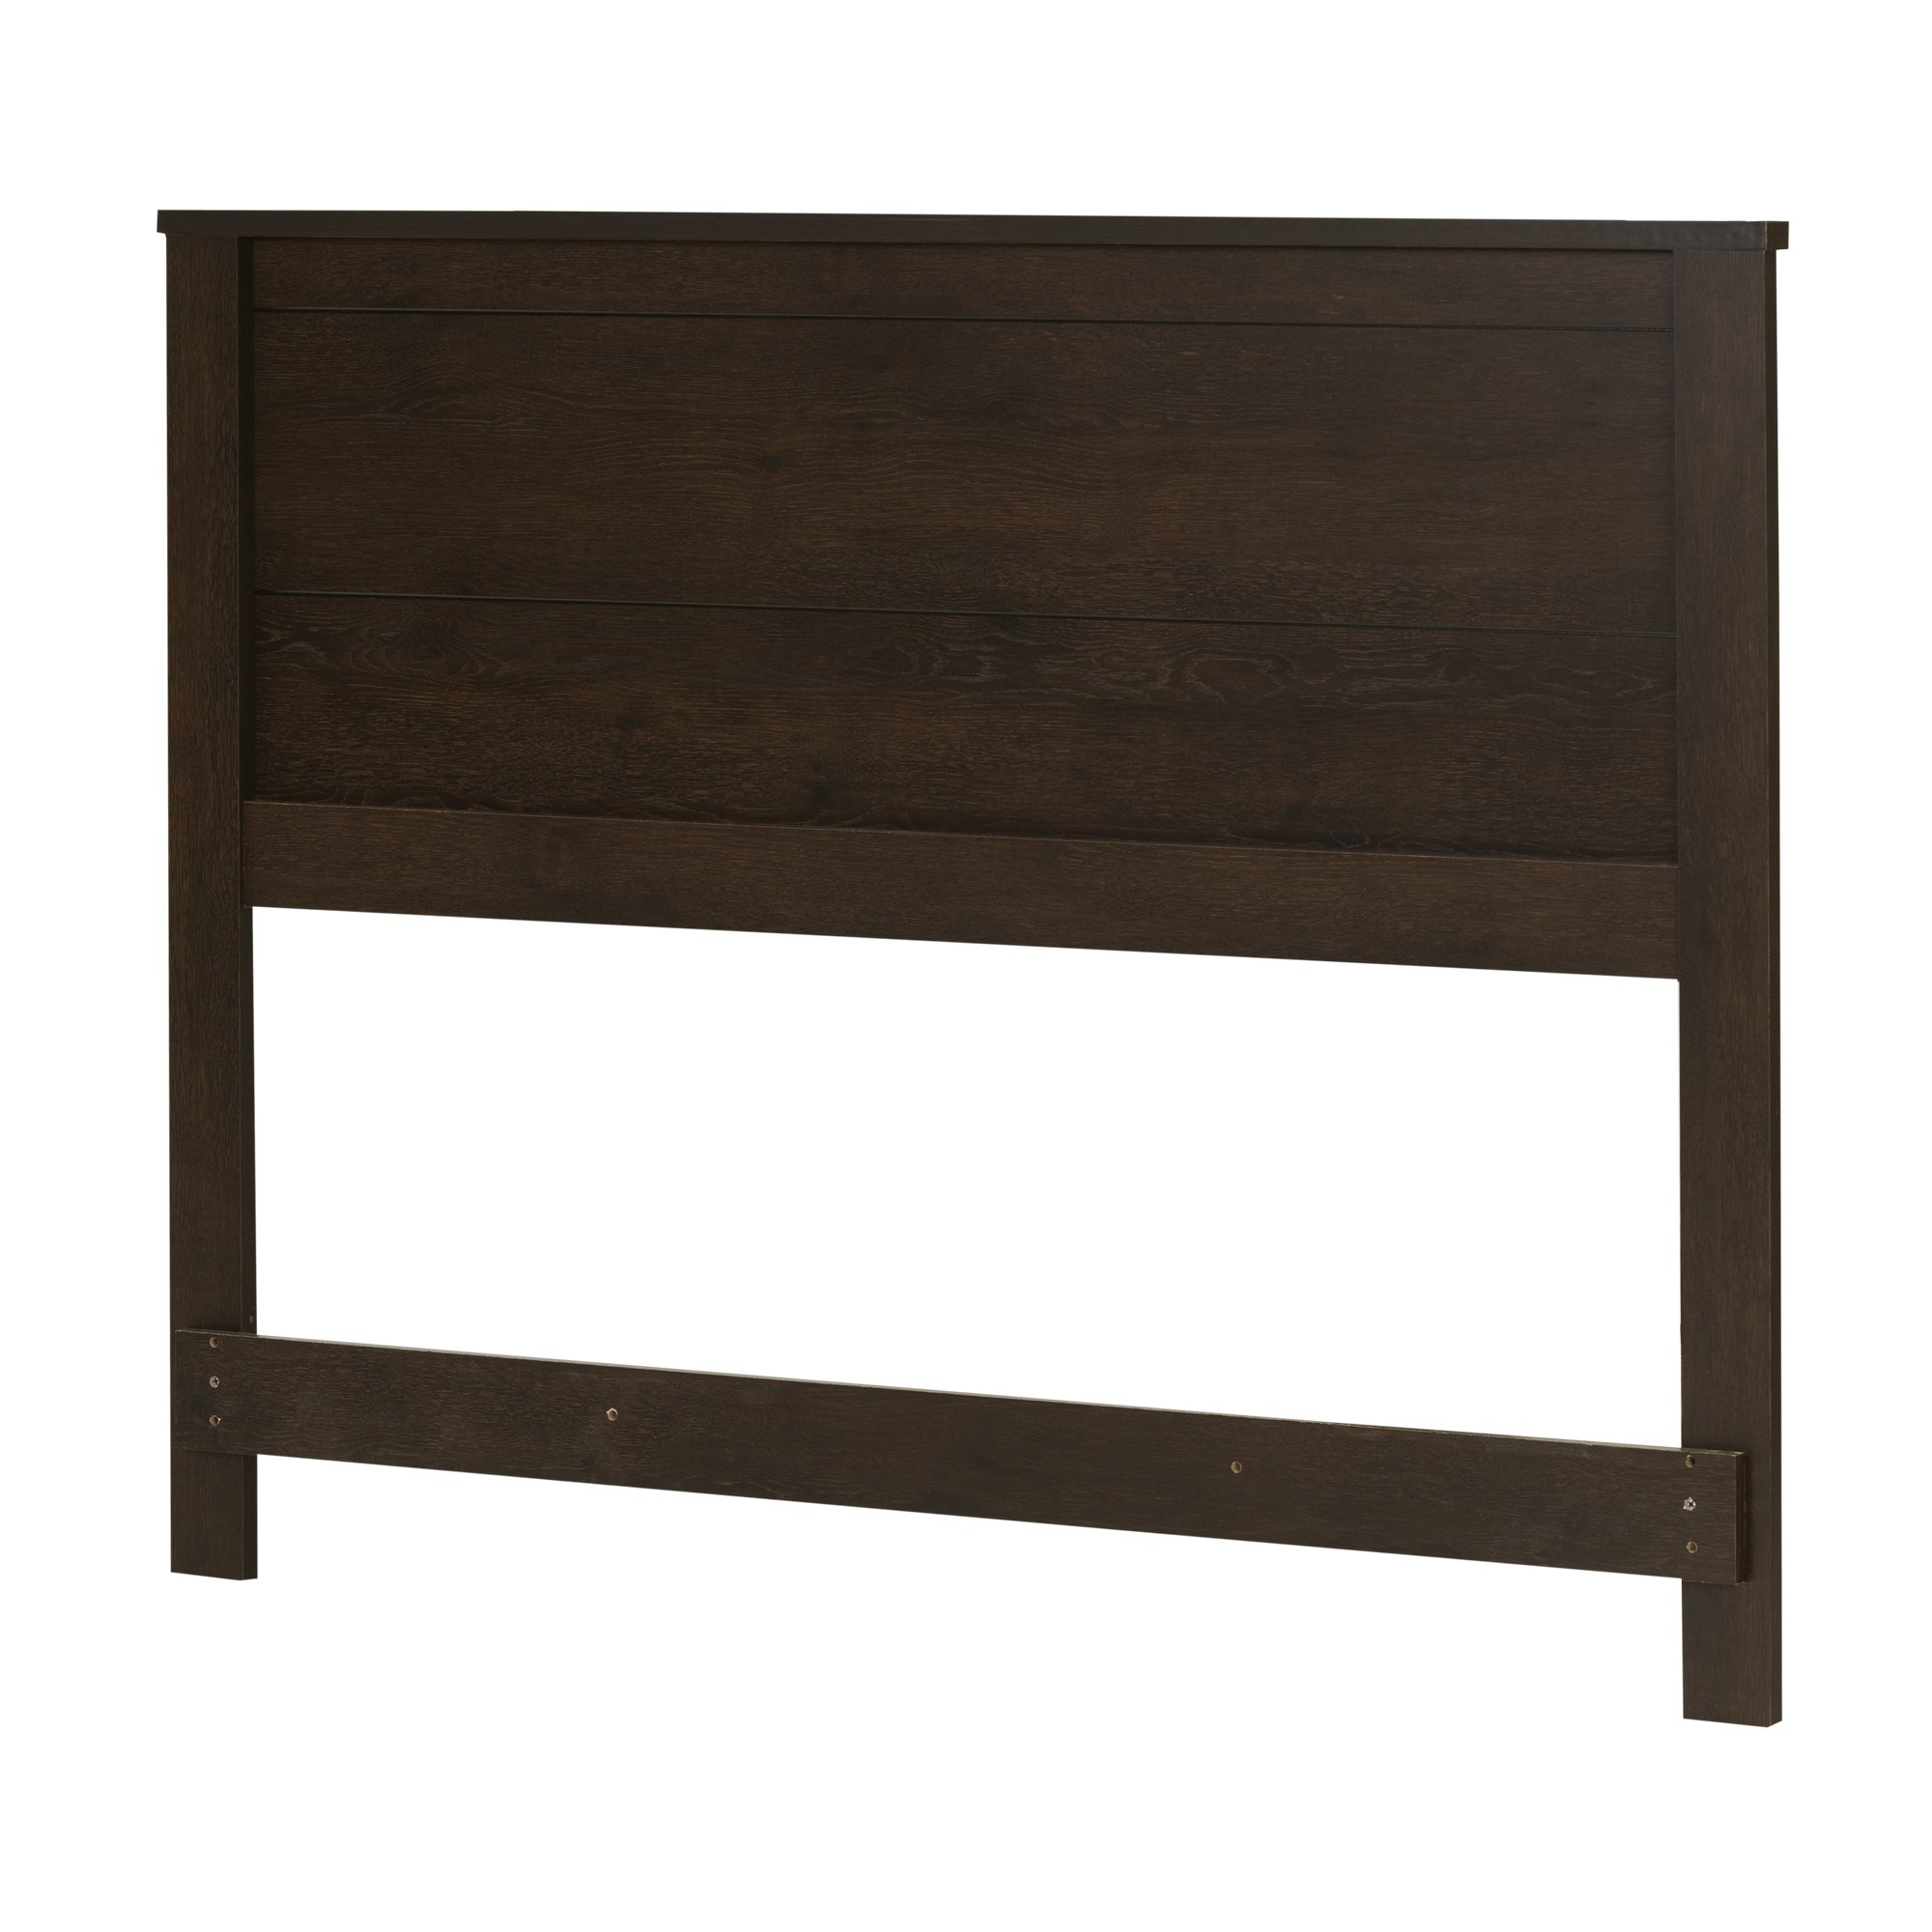 South Shore Fynn Headboard Full 54-Inch, Brown Oak